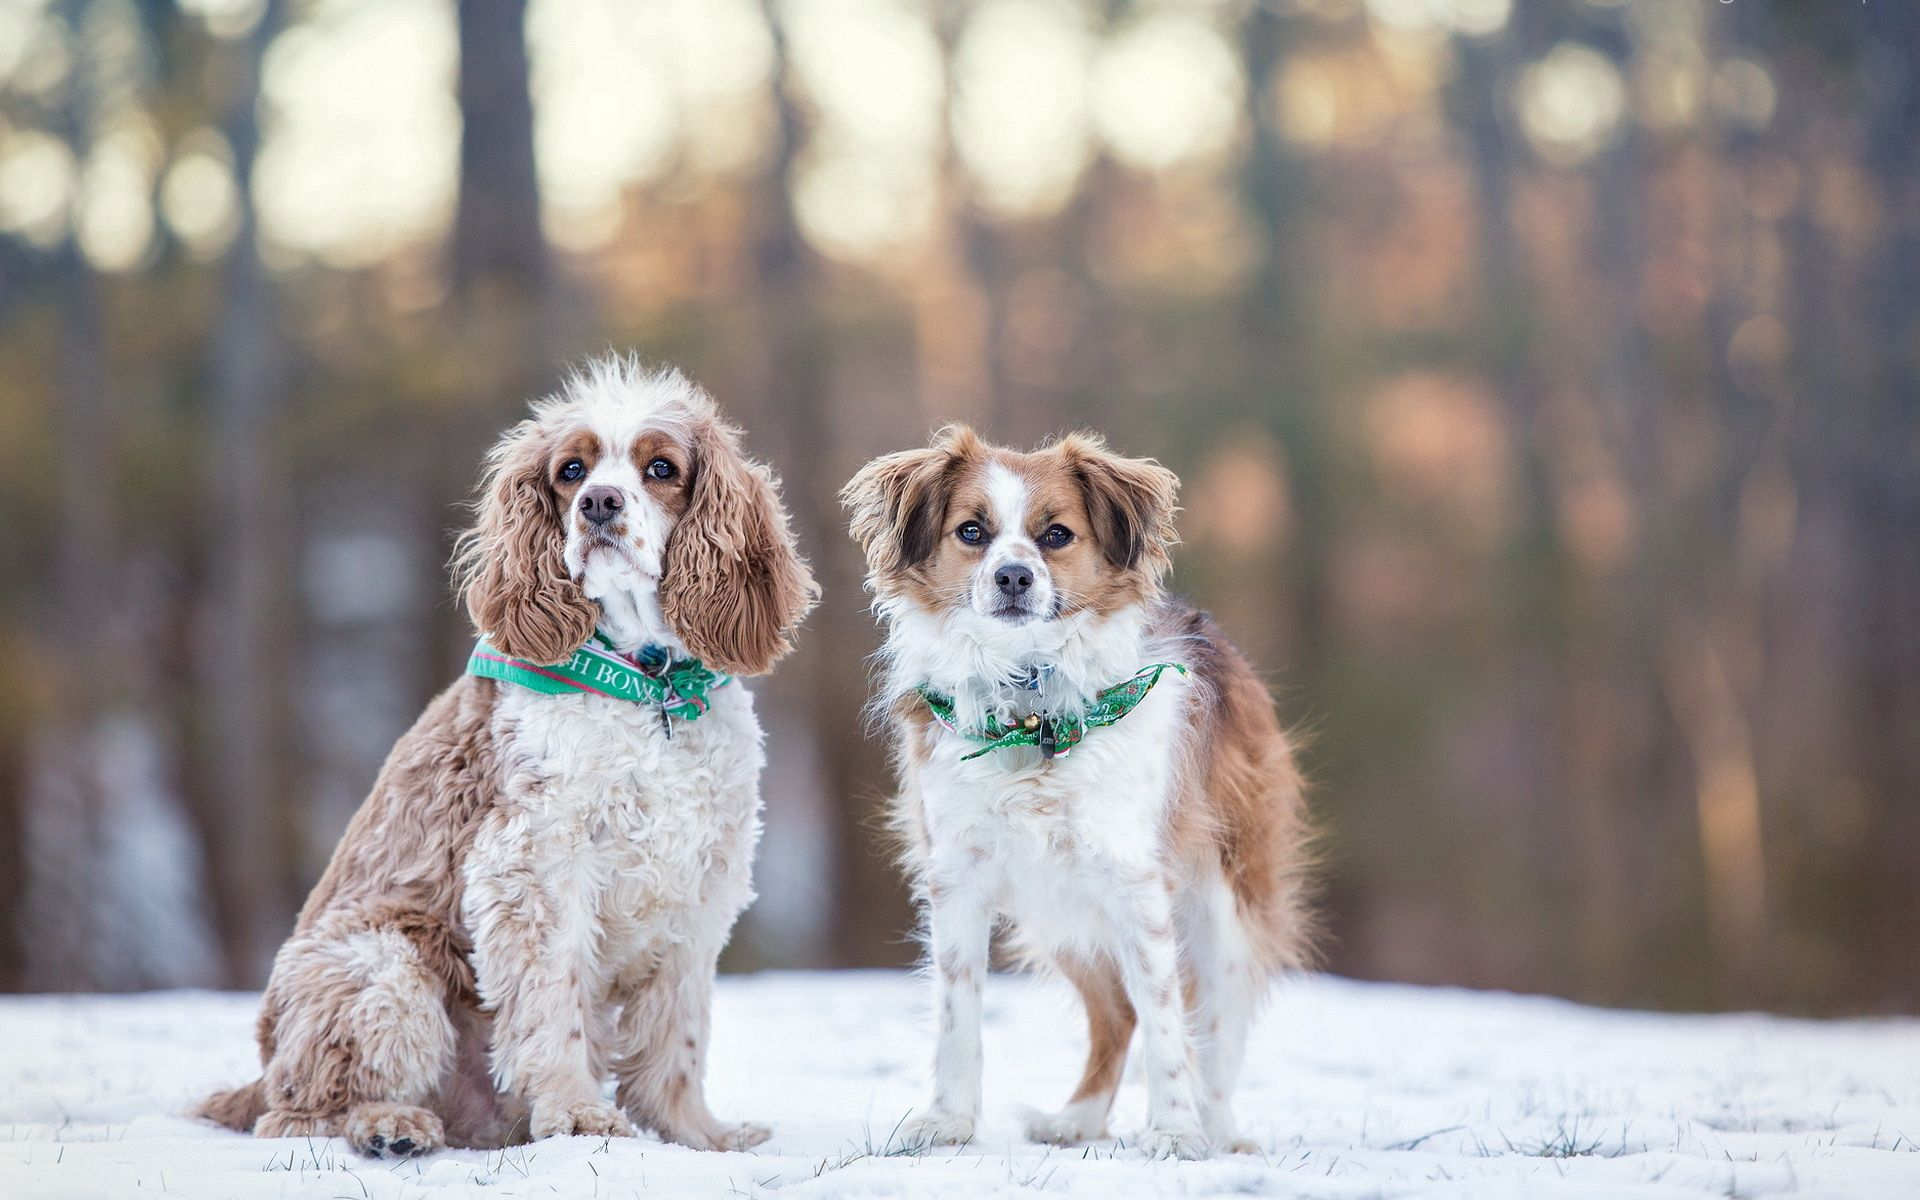 107647 download wallpaper Animals, Dogs, Winter, Snow screensavers and pictures for free